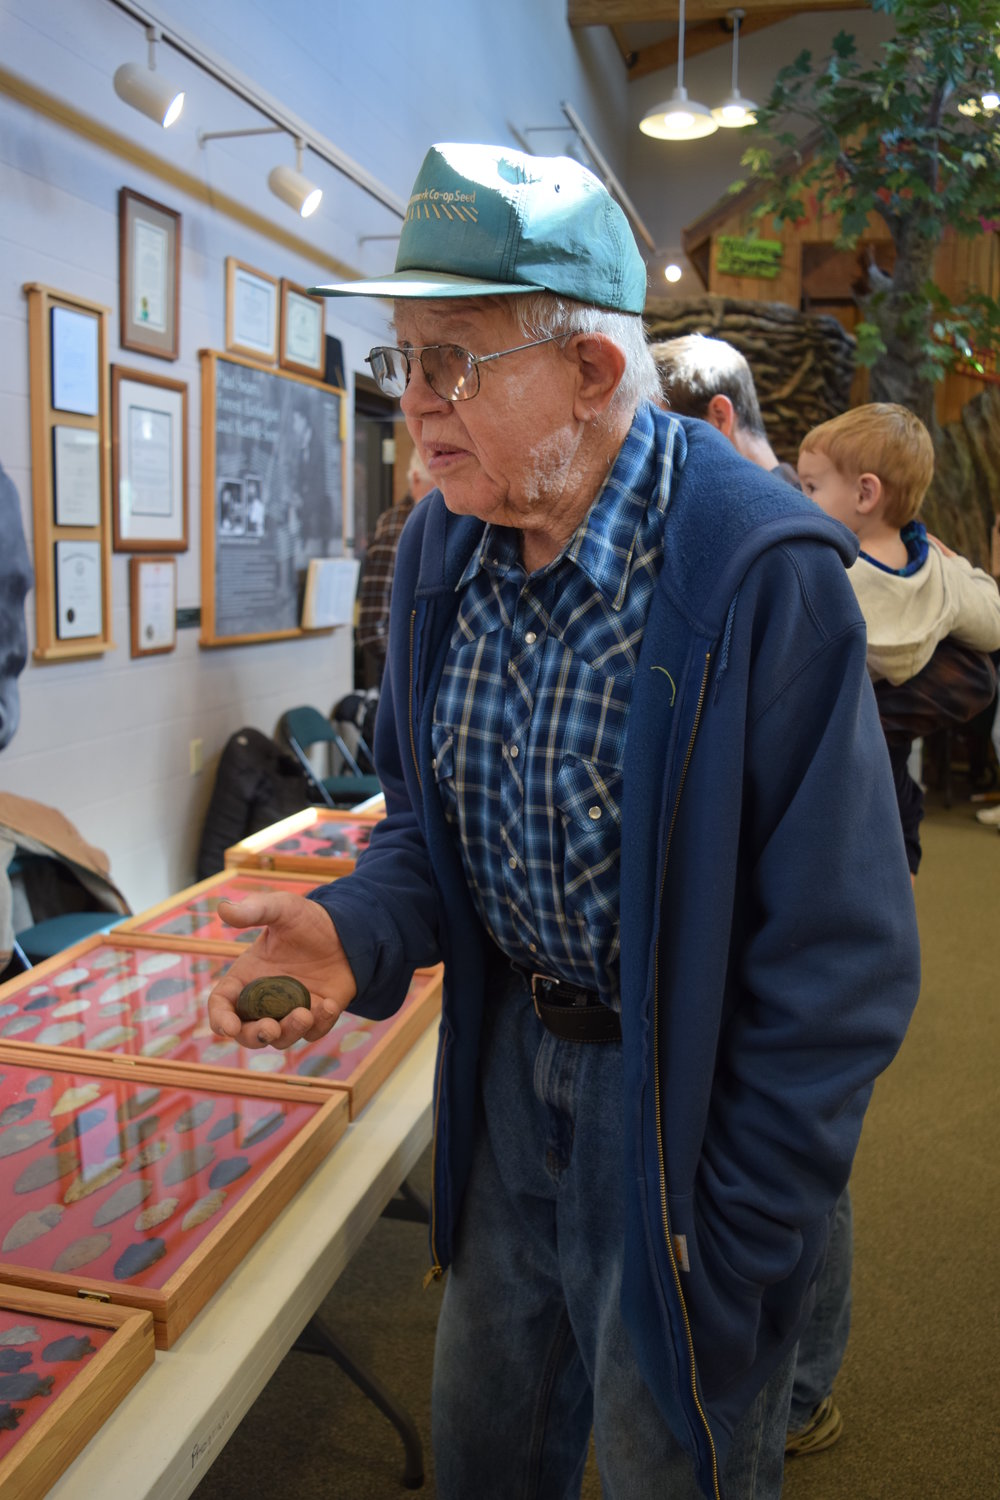 Don Higgins at the 2018 Lowe-Volk Park Arrowhead Day, with his first ever found artifact.